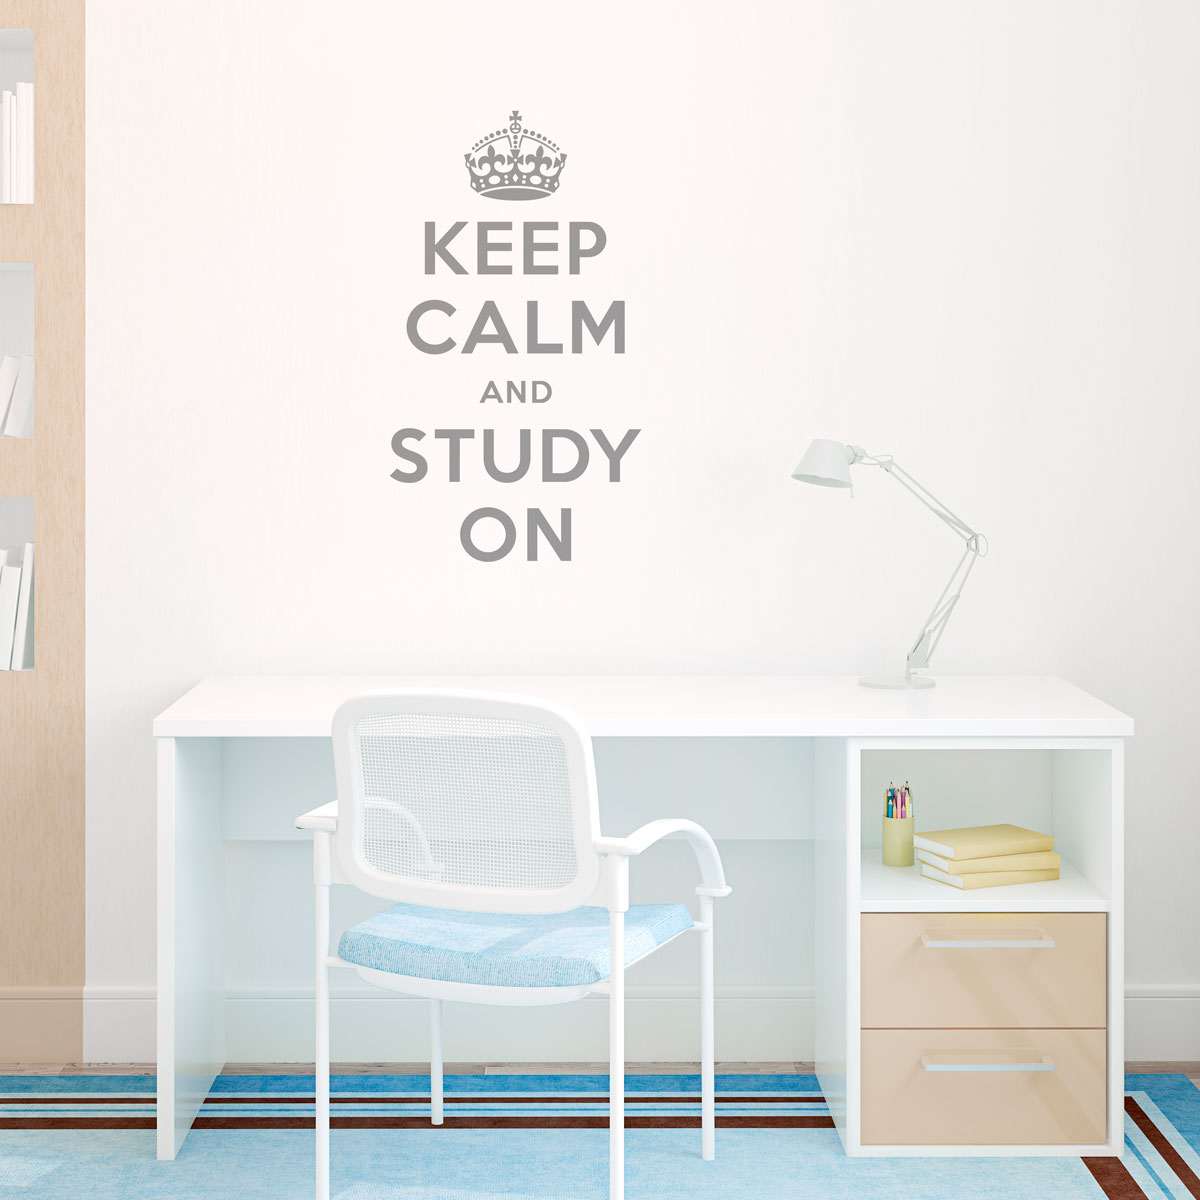 Keep calm and study on wall quote decal infamous keep calm poster than this decal would be perfect for your childs bedroom college dorm room a library or classroom keep calm and study on amipublicfo Choice Image